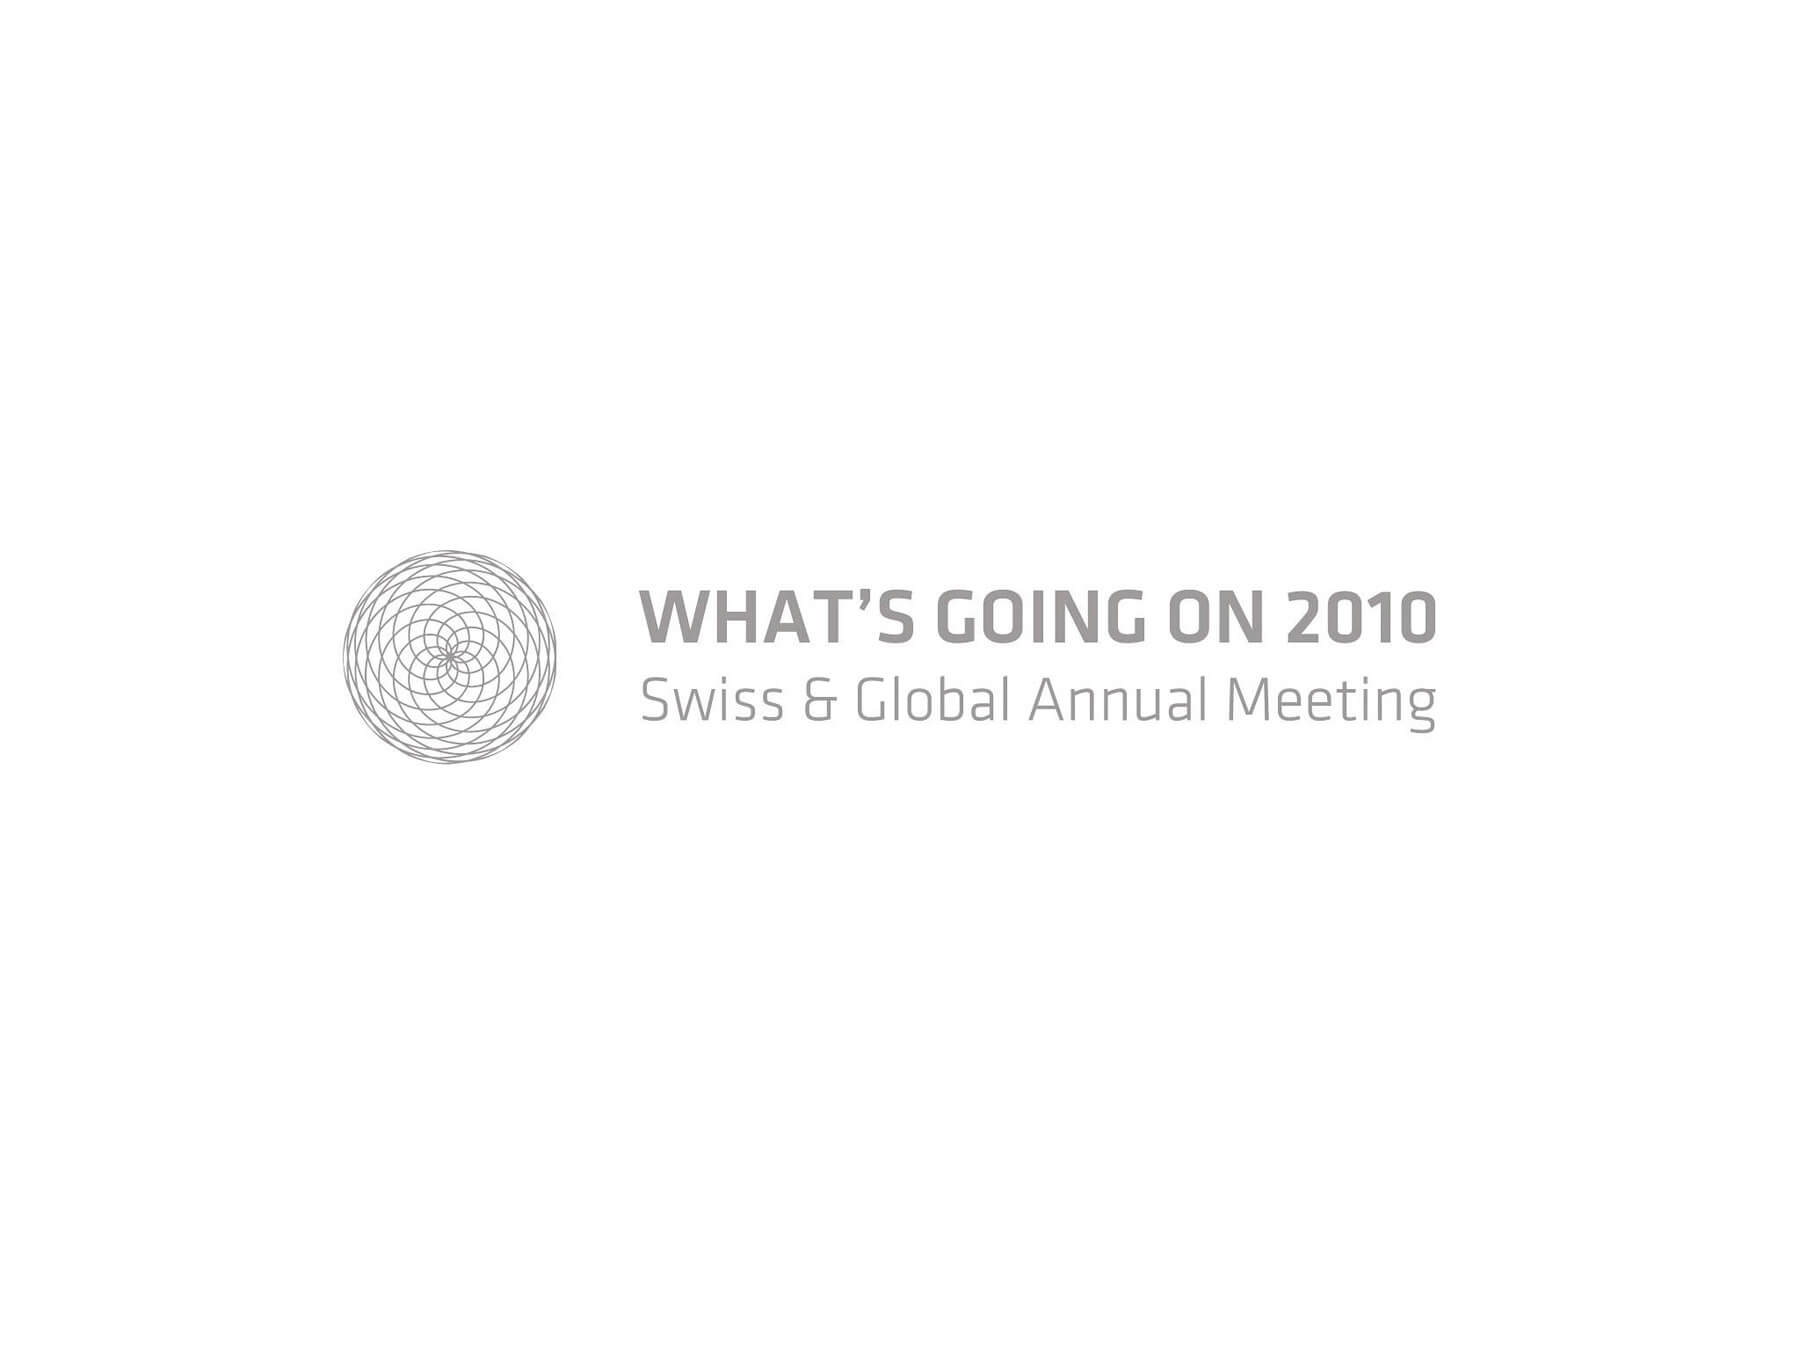 Il logo WGO What's going on 2010